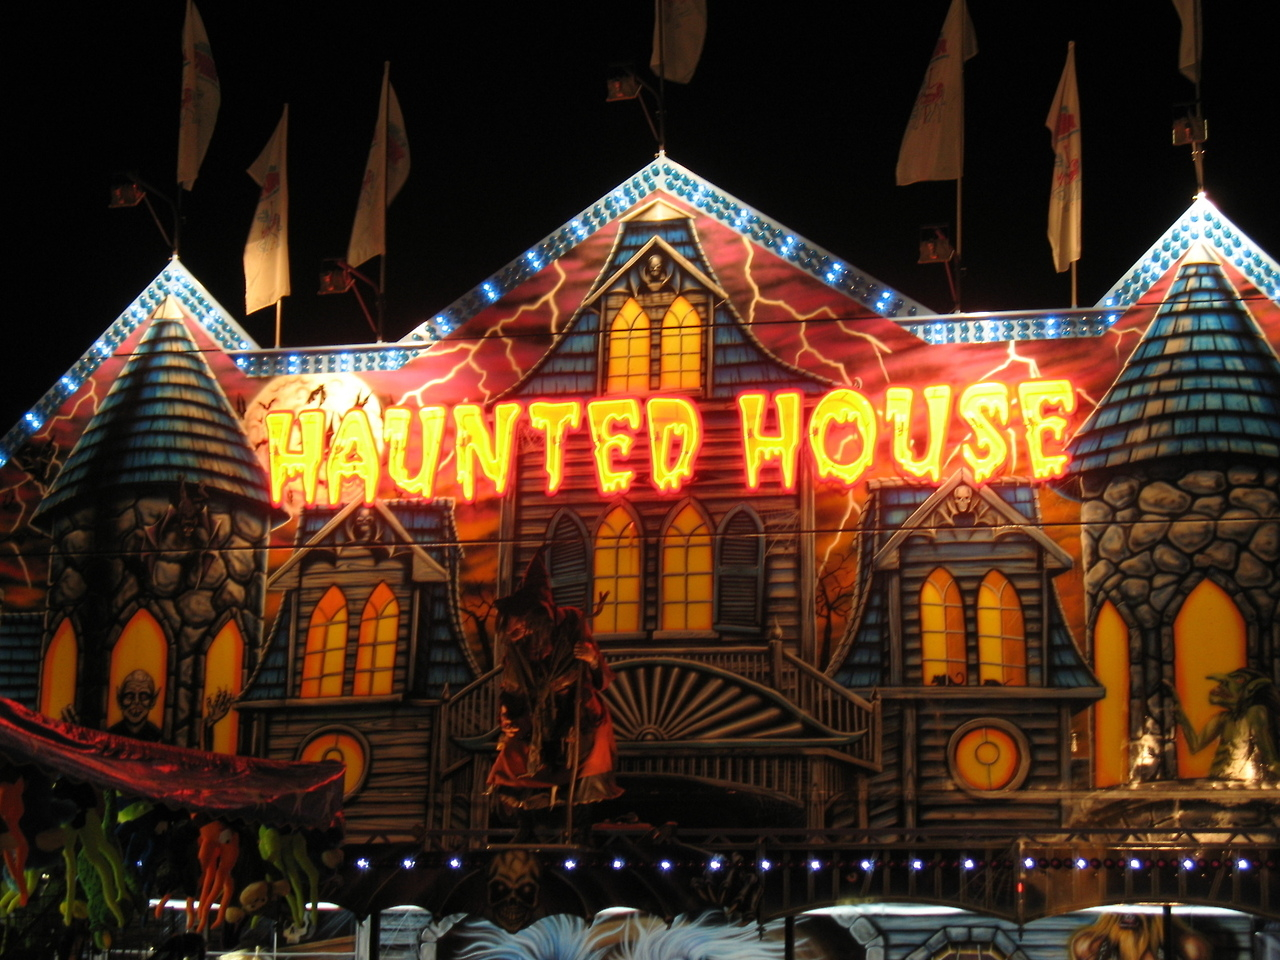 Haunted house pictures photos and images for facebook for Pinterest haunted house